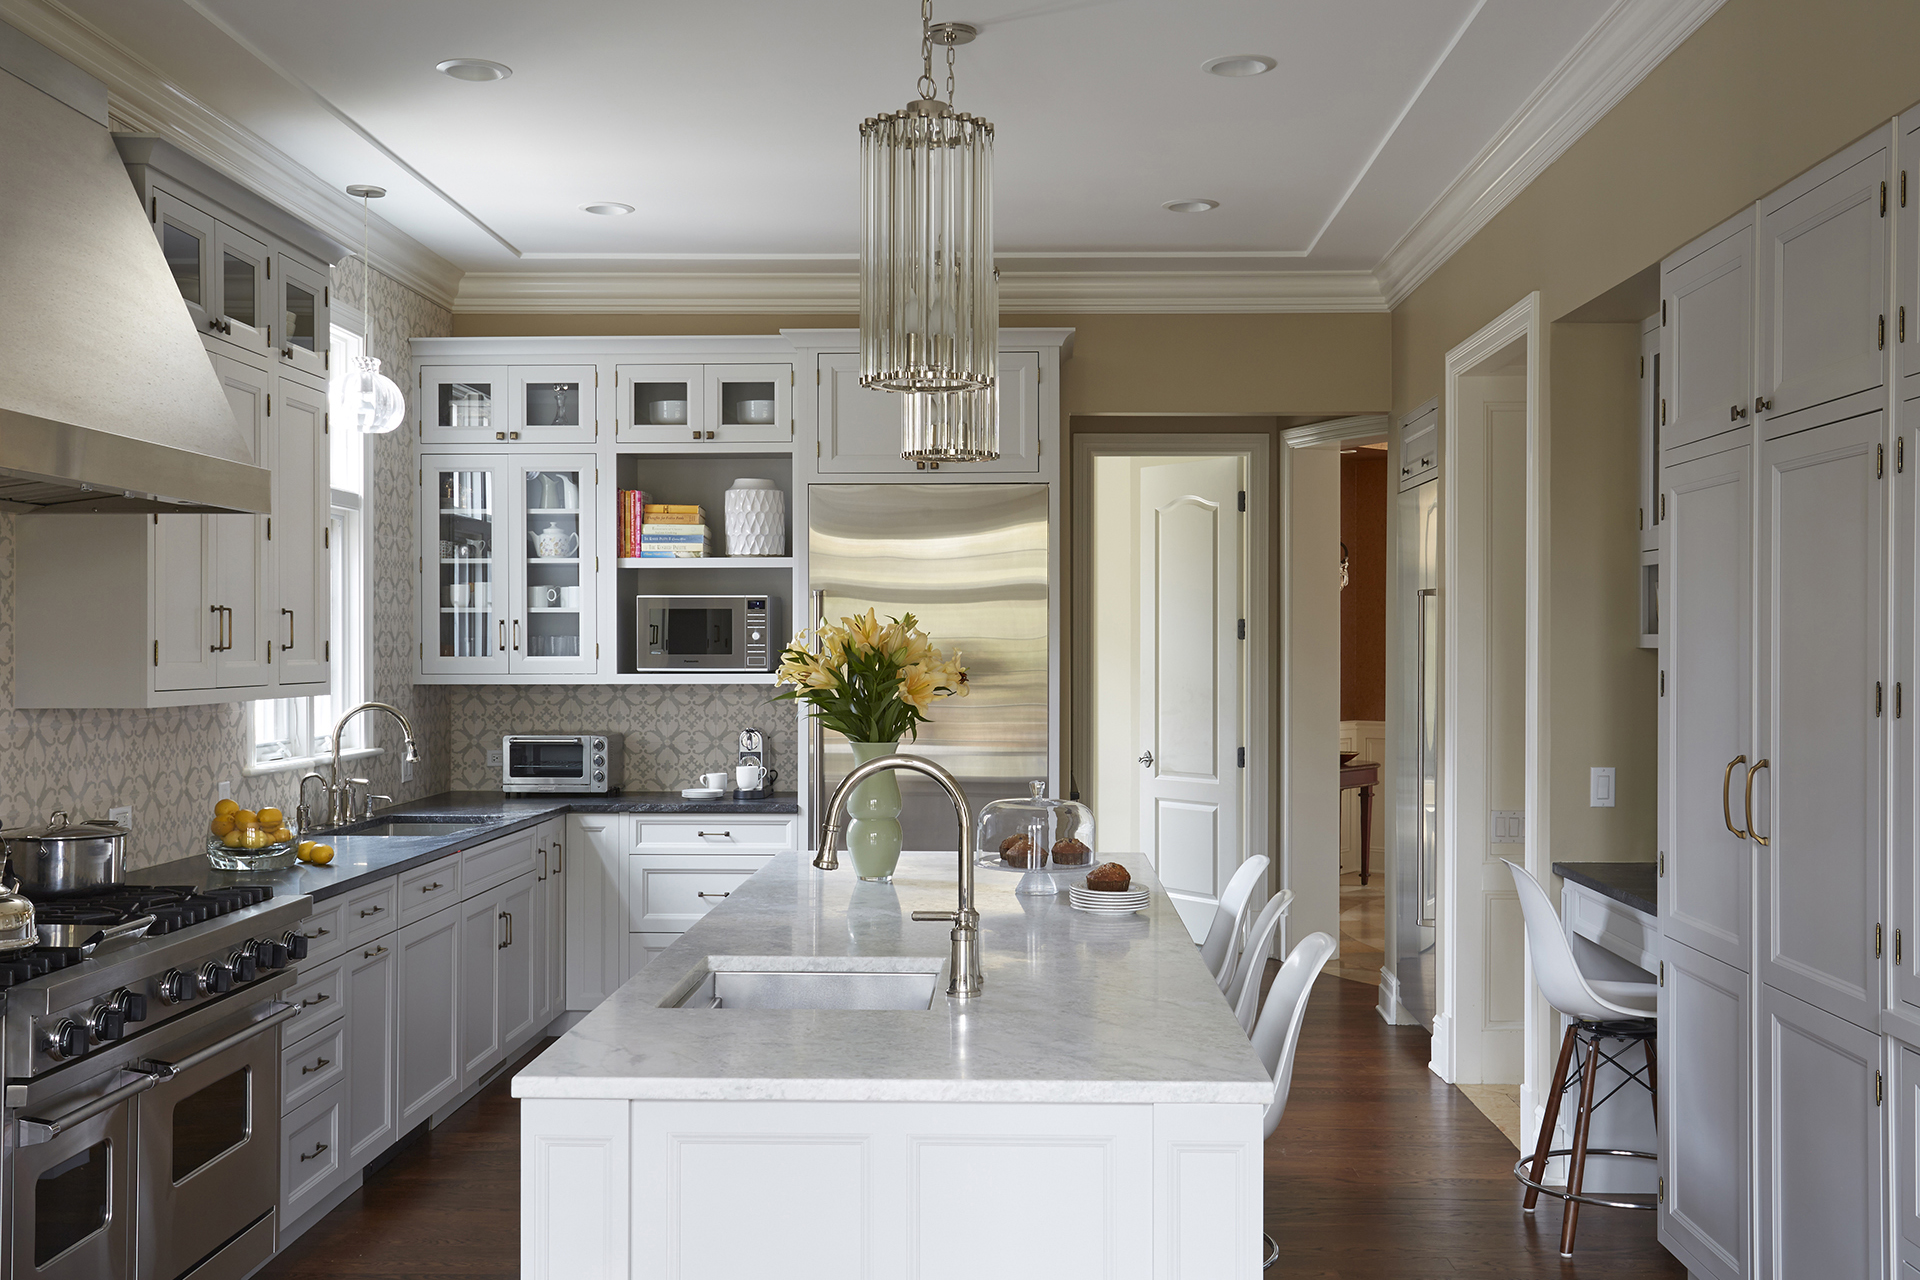 Luxury white kitchen furniture design with large island after remodeling in Winnetka